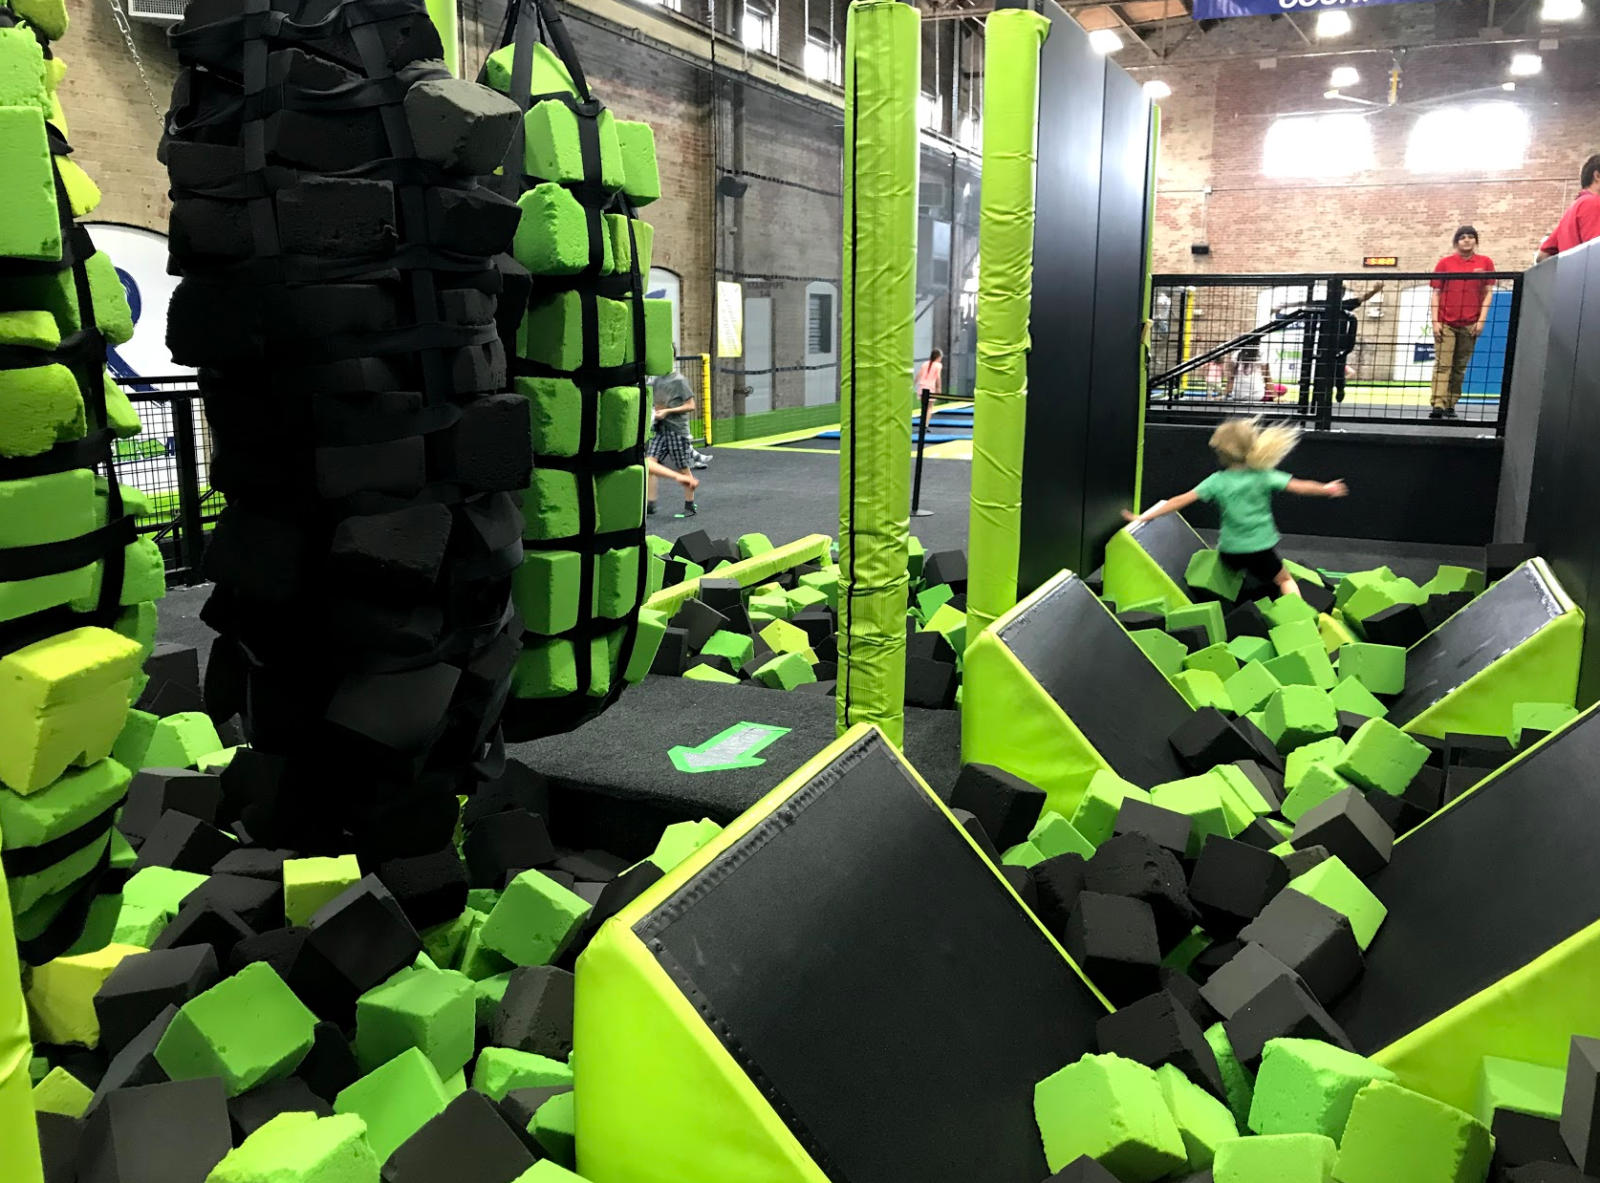 Xtreme Air Wyomissing Trampoline Park Coupons Frugal Lancaster